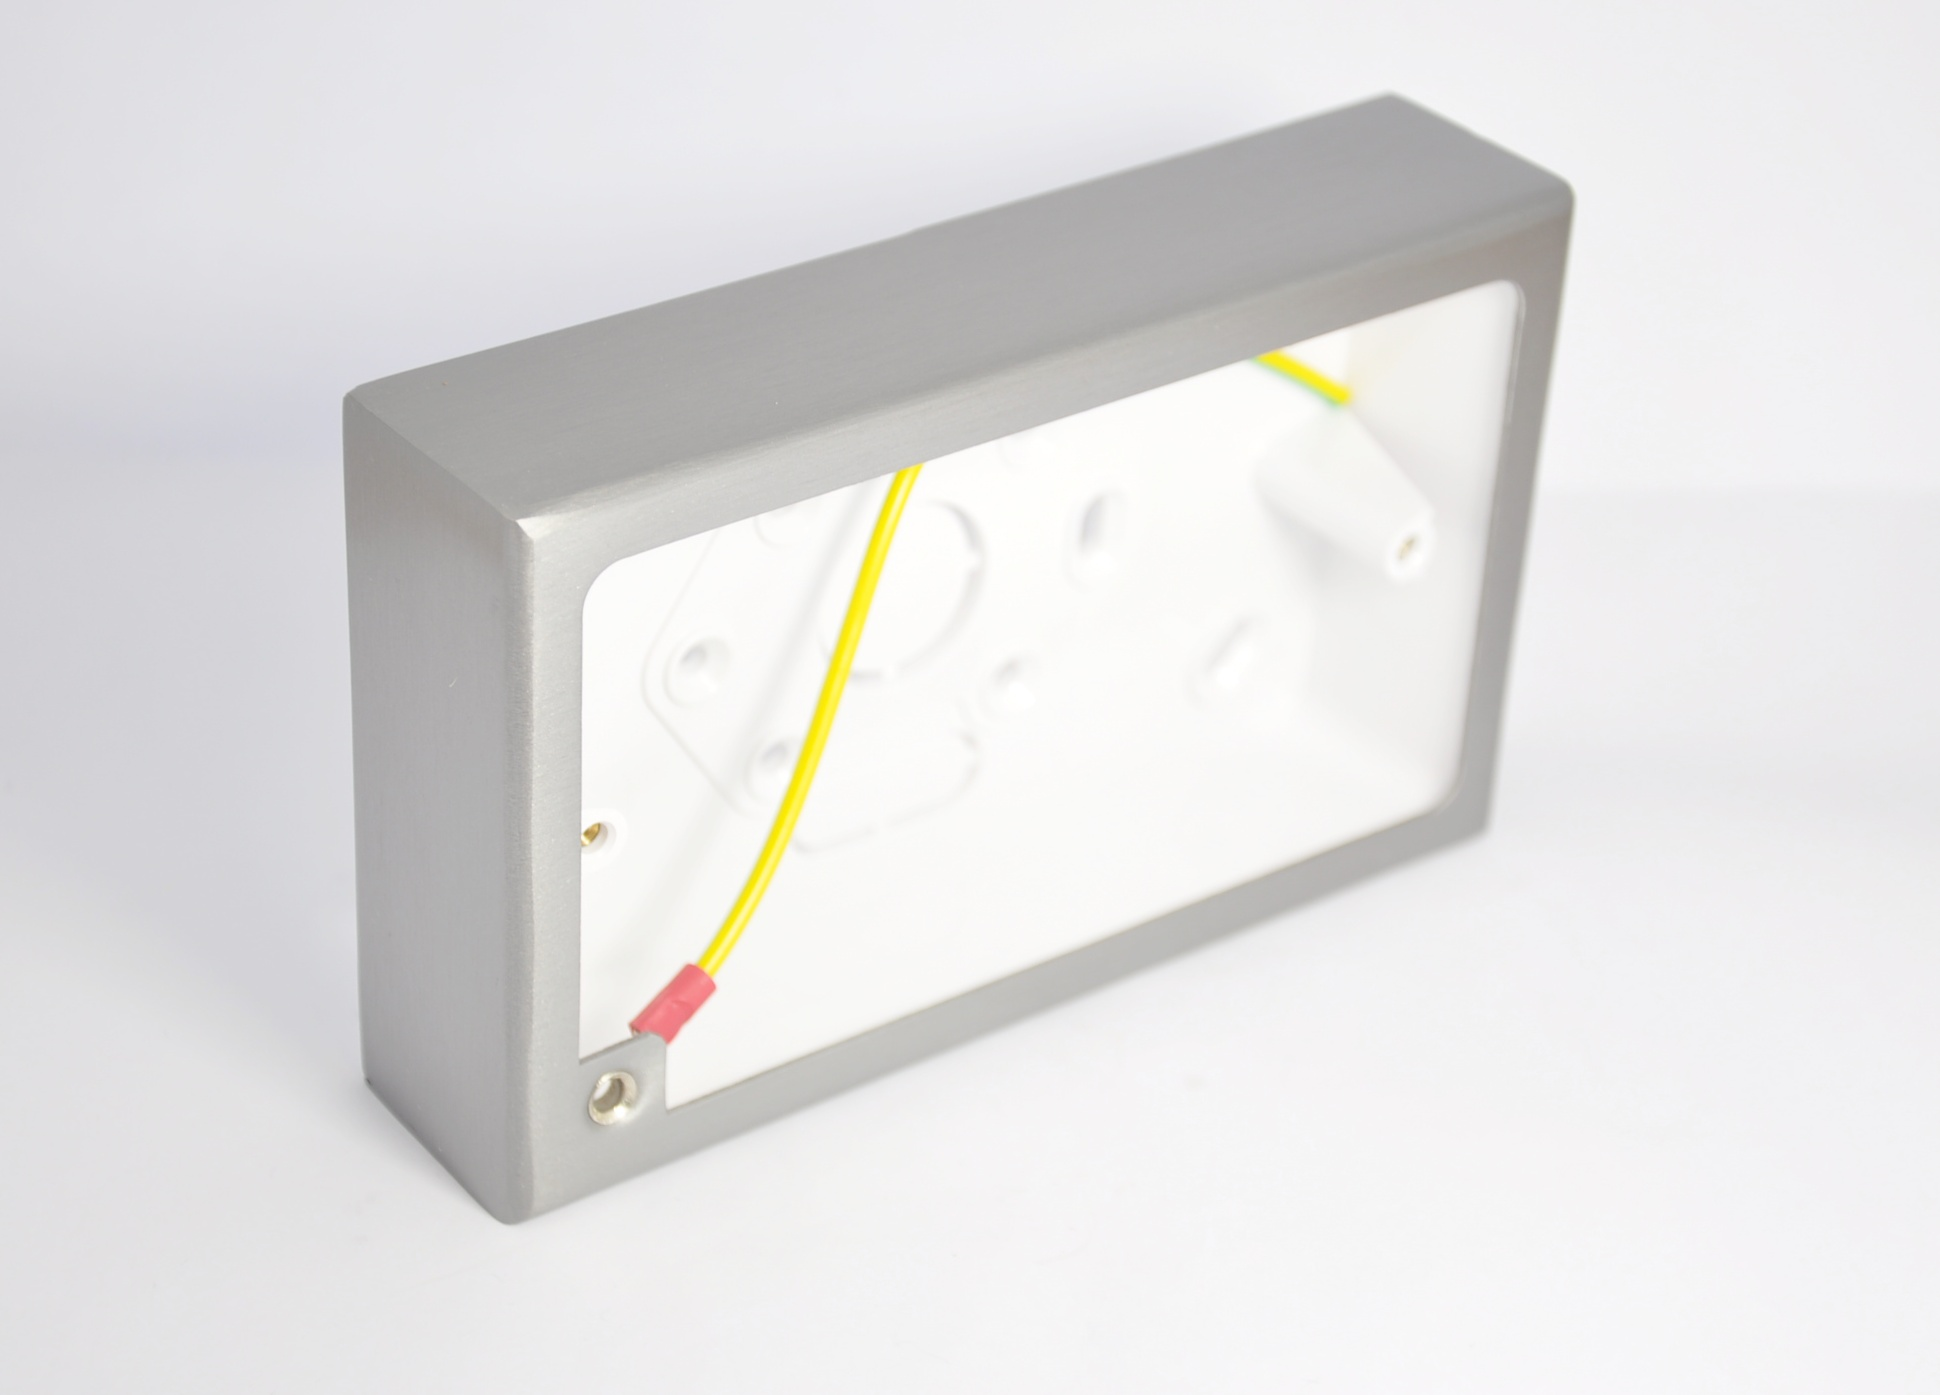 Decorative Electrical Box Cover A Nice I Need Decorating Ideas To Hide Fuse Boxes By Surface Mounted Stainless Steel Pattress With